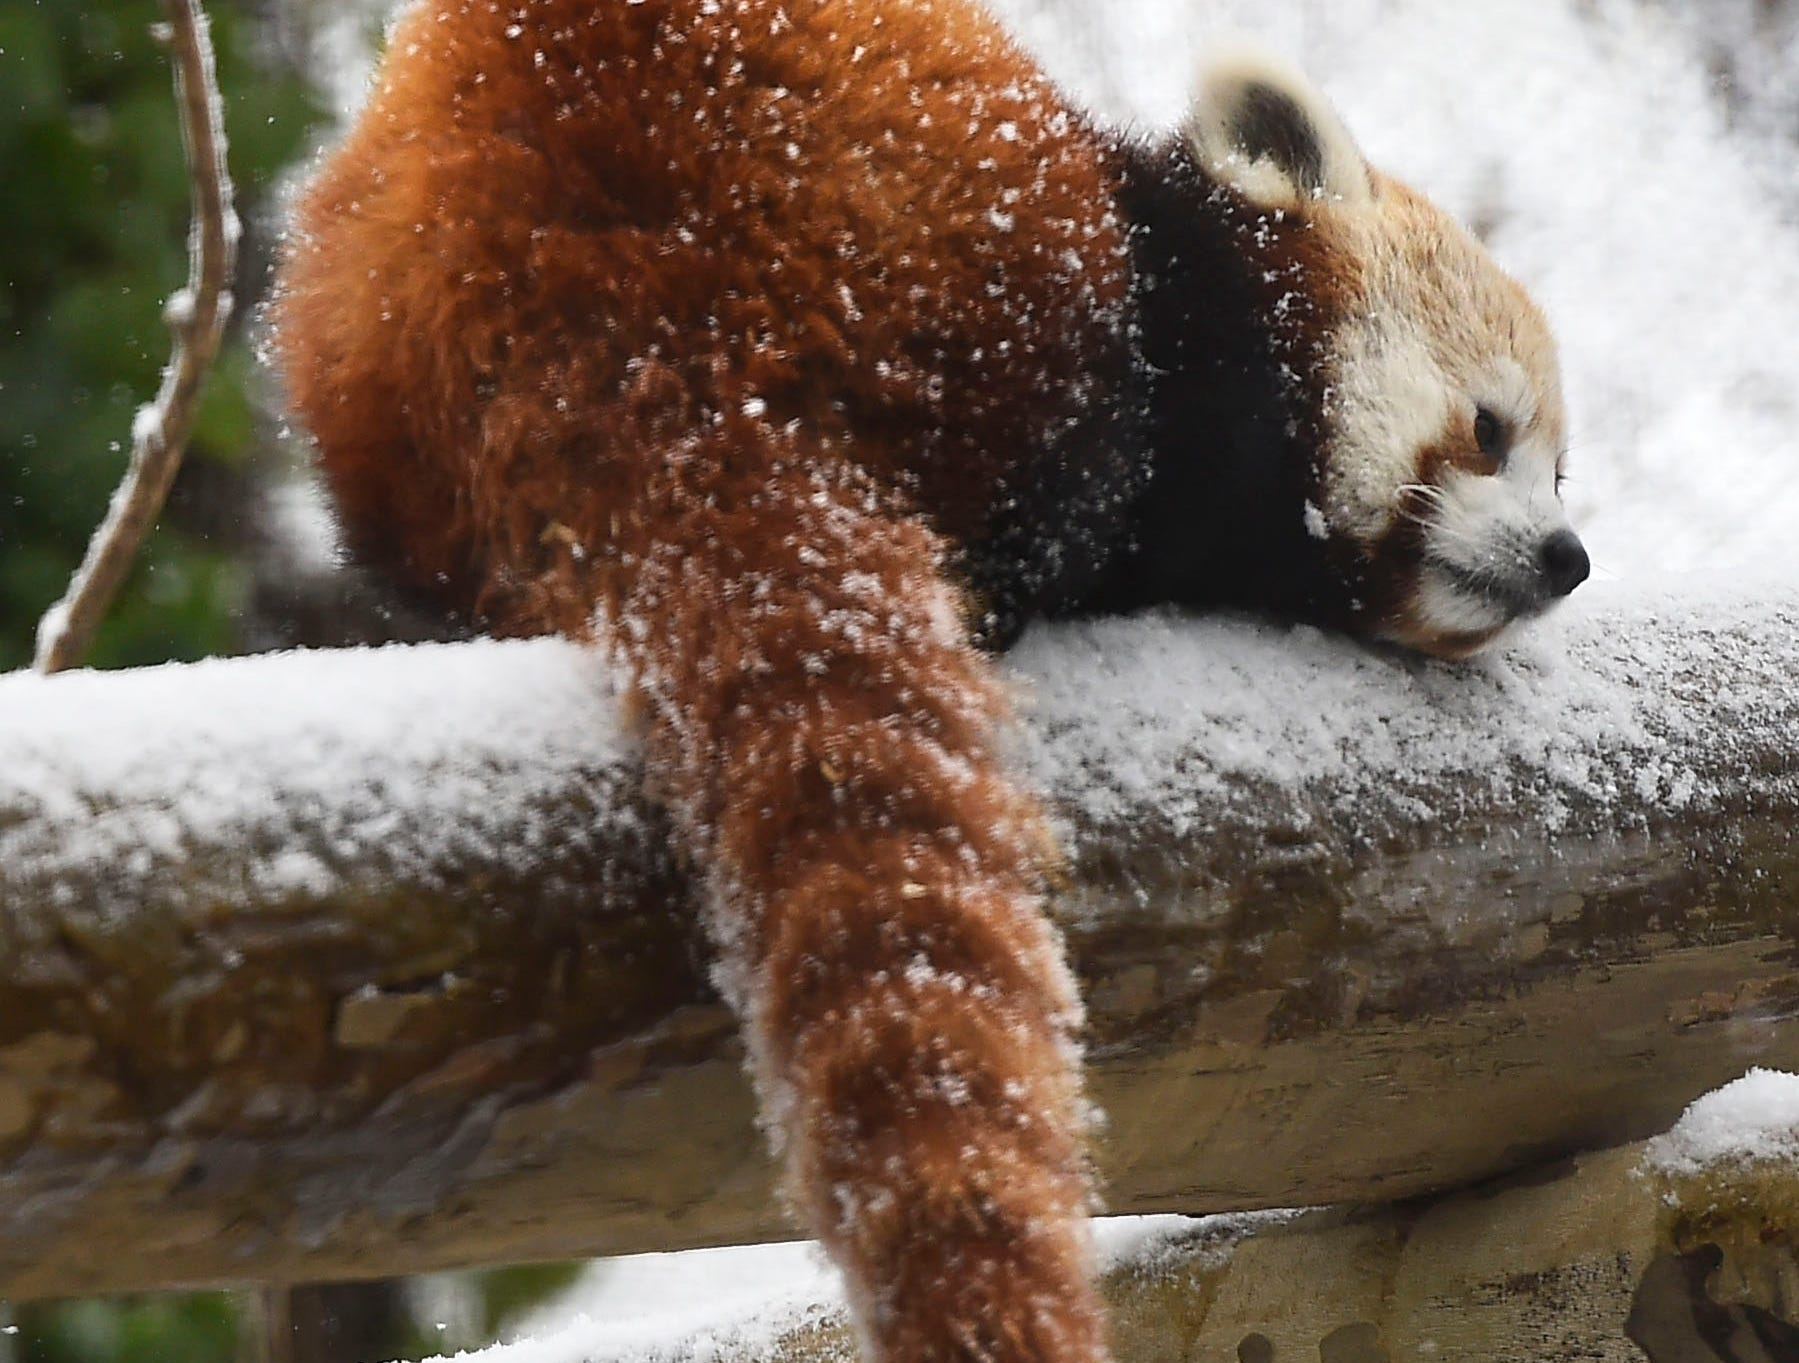 A red panda cub sleeps on a snowy perch at its outdoor habitat Wednesday, Feb. 18, 2015, at the Knoxville Zoo. Two male cubs were born June 23, 2014, to mother Scarlett, and father Madan.